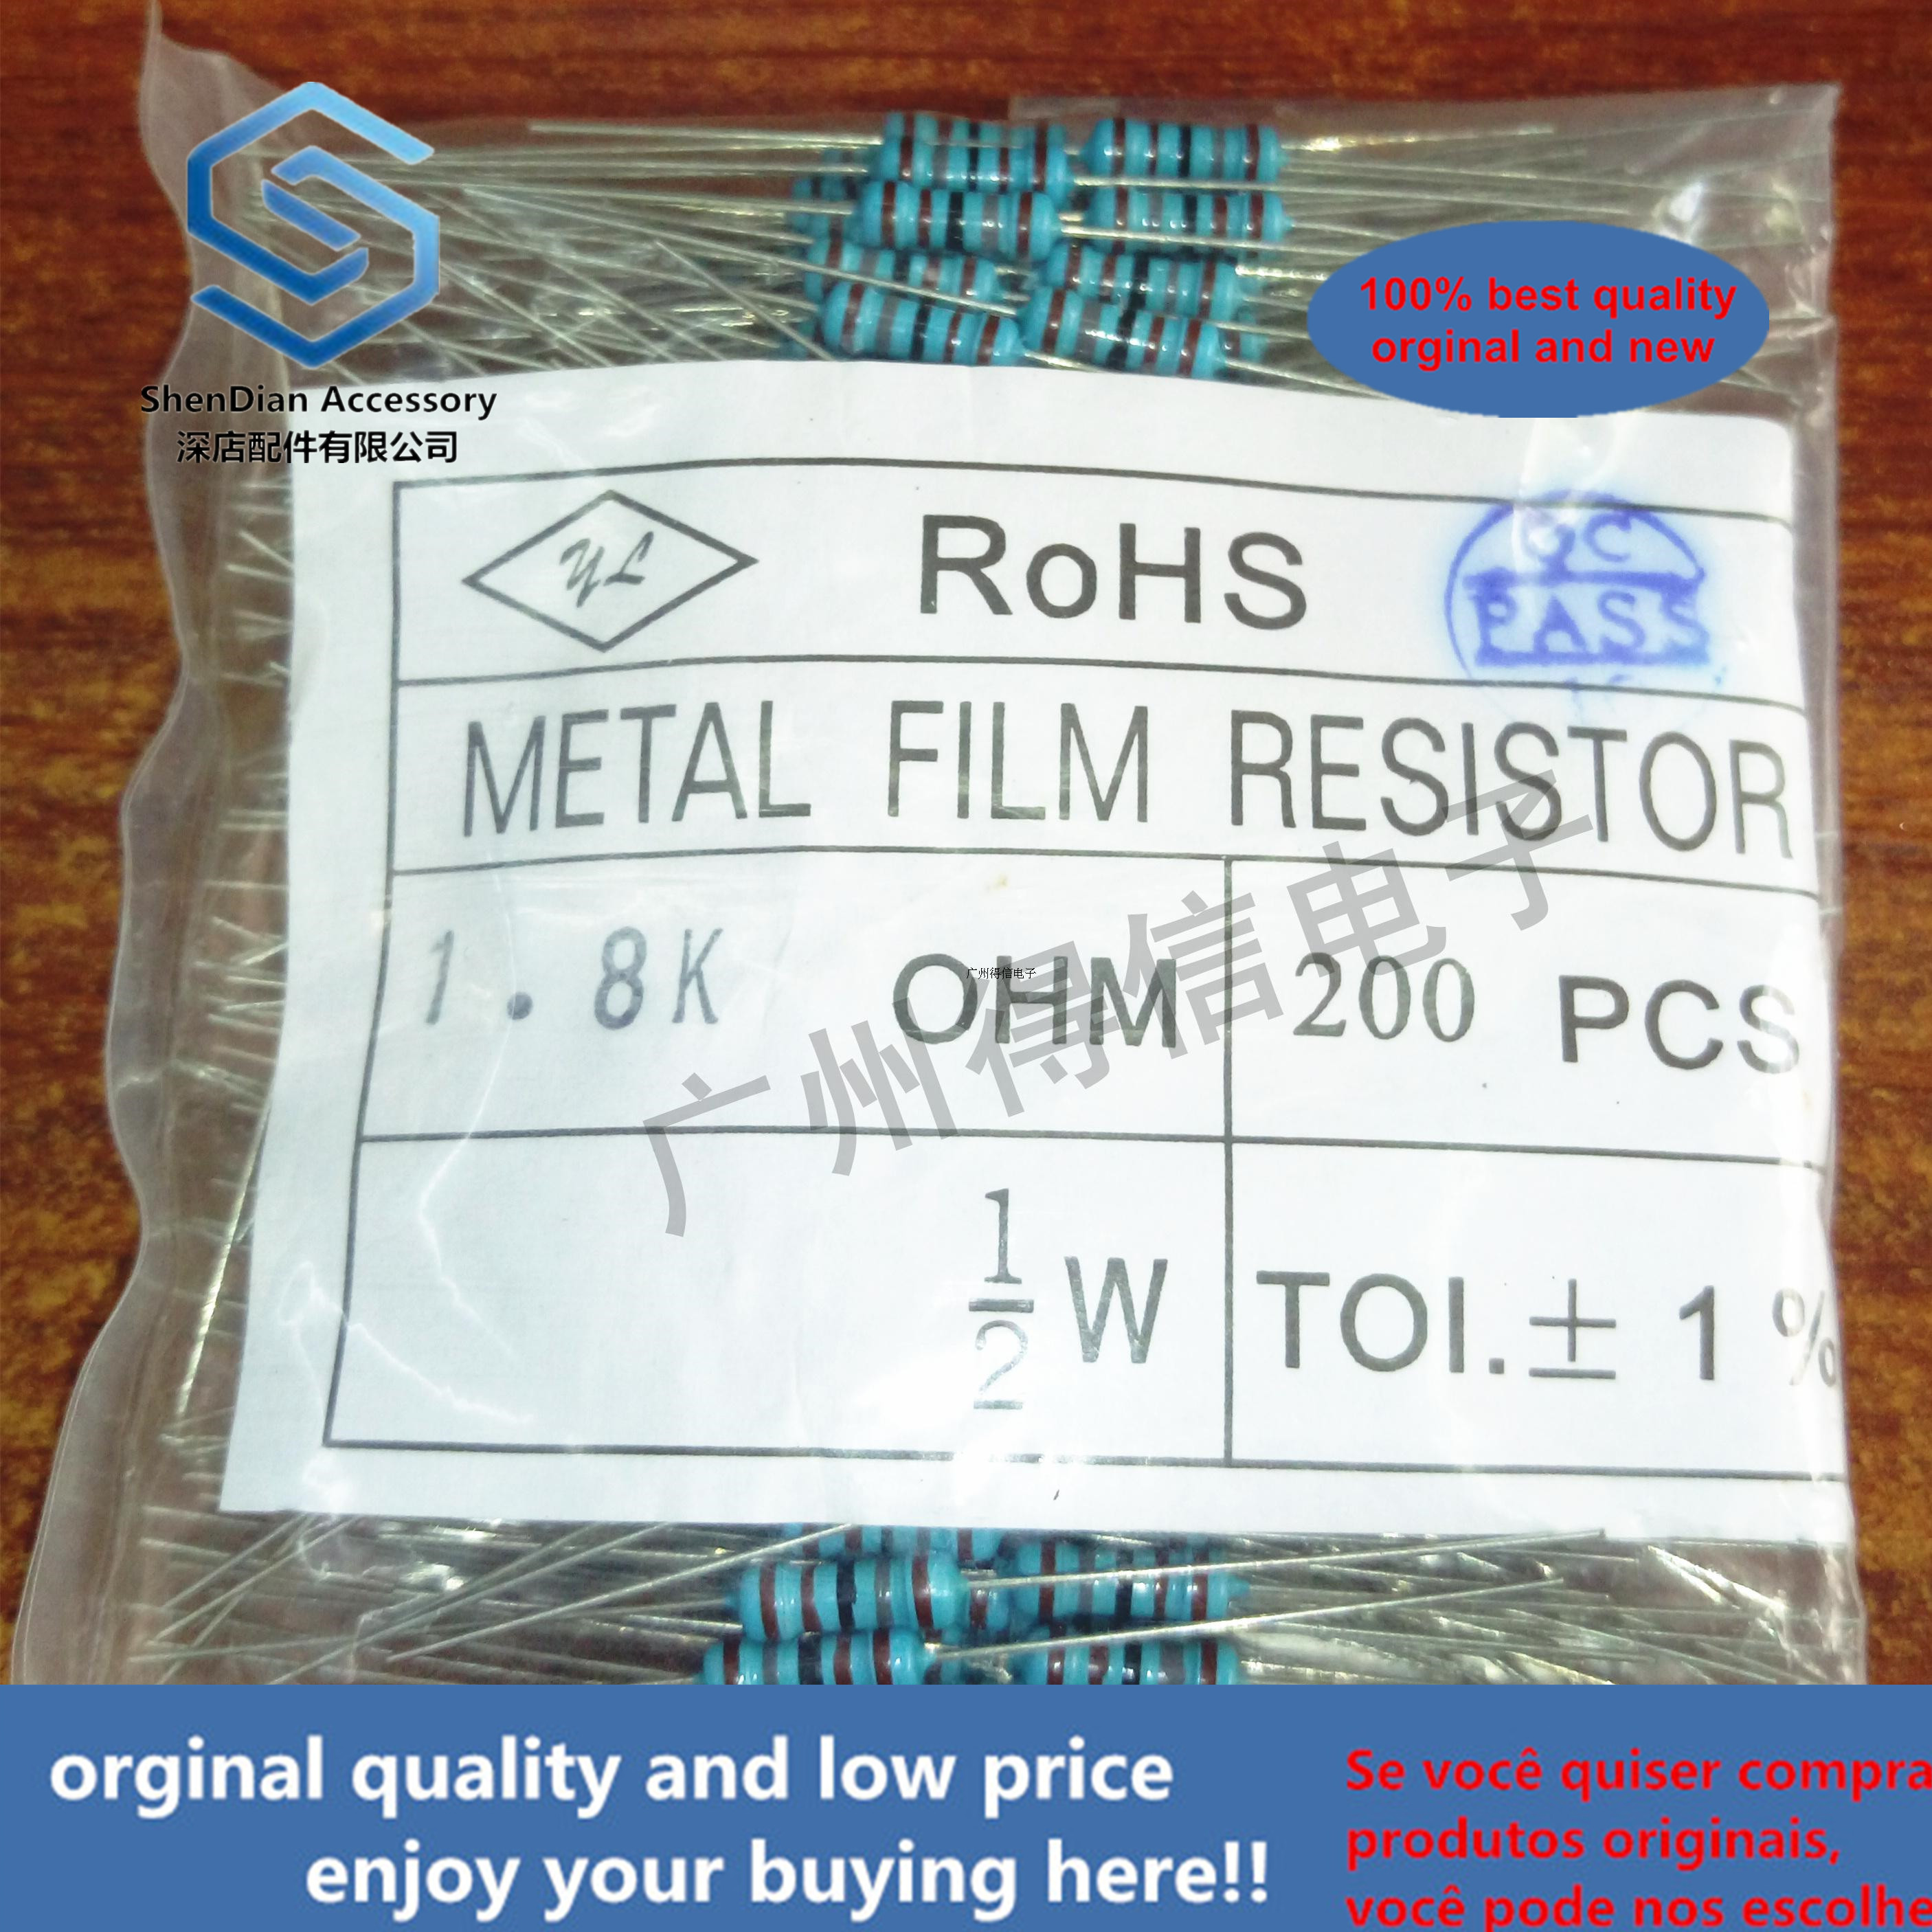 200pcs 1 / 2W 1.5K 1500 Euro 1% Brand New Metal Film Iron Feet Resistor Bag 200 Pcs Per Pack